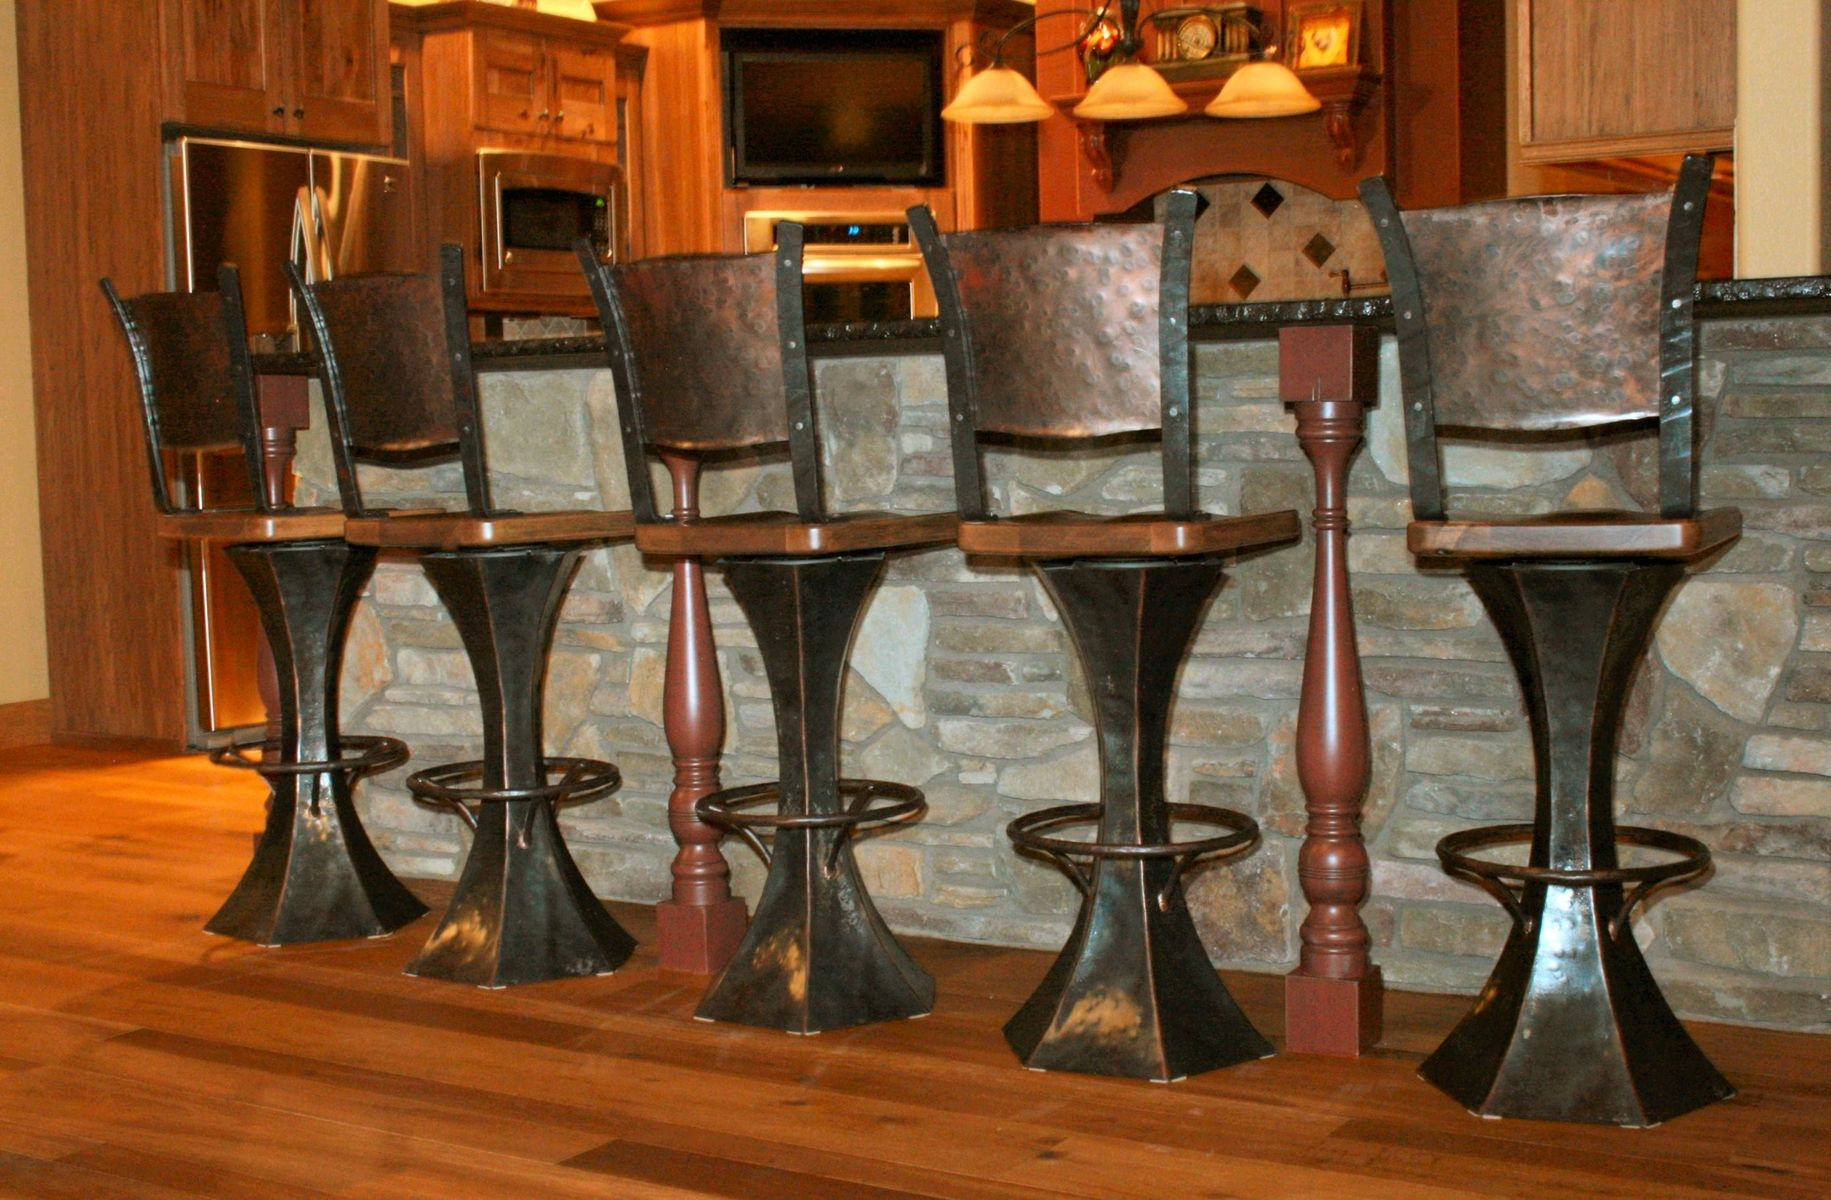 Hand Crafted Ball Peened Stools By Iron Mountain Anvil